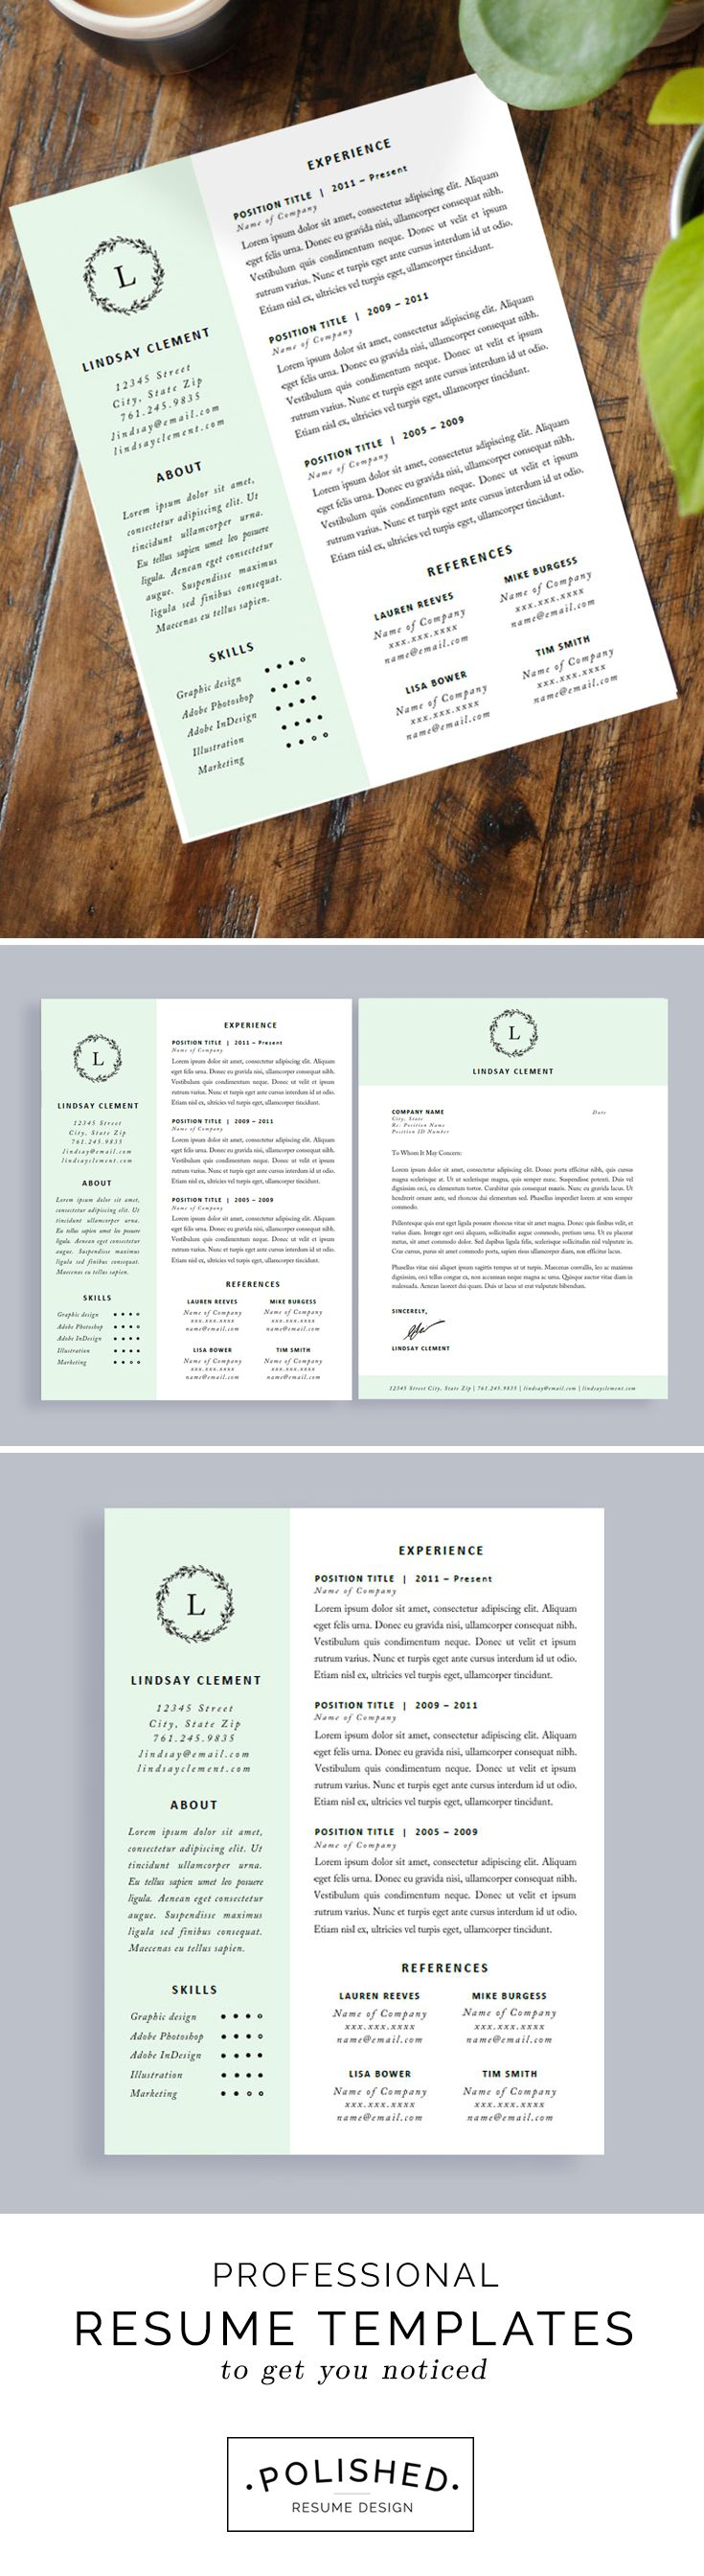 free resume and cover letter builder best ideas about cover letter example pinterest resume professional resume